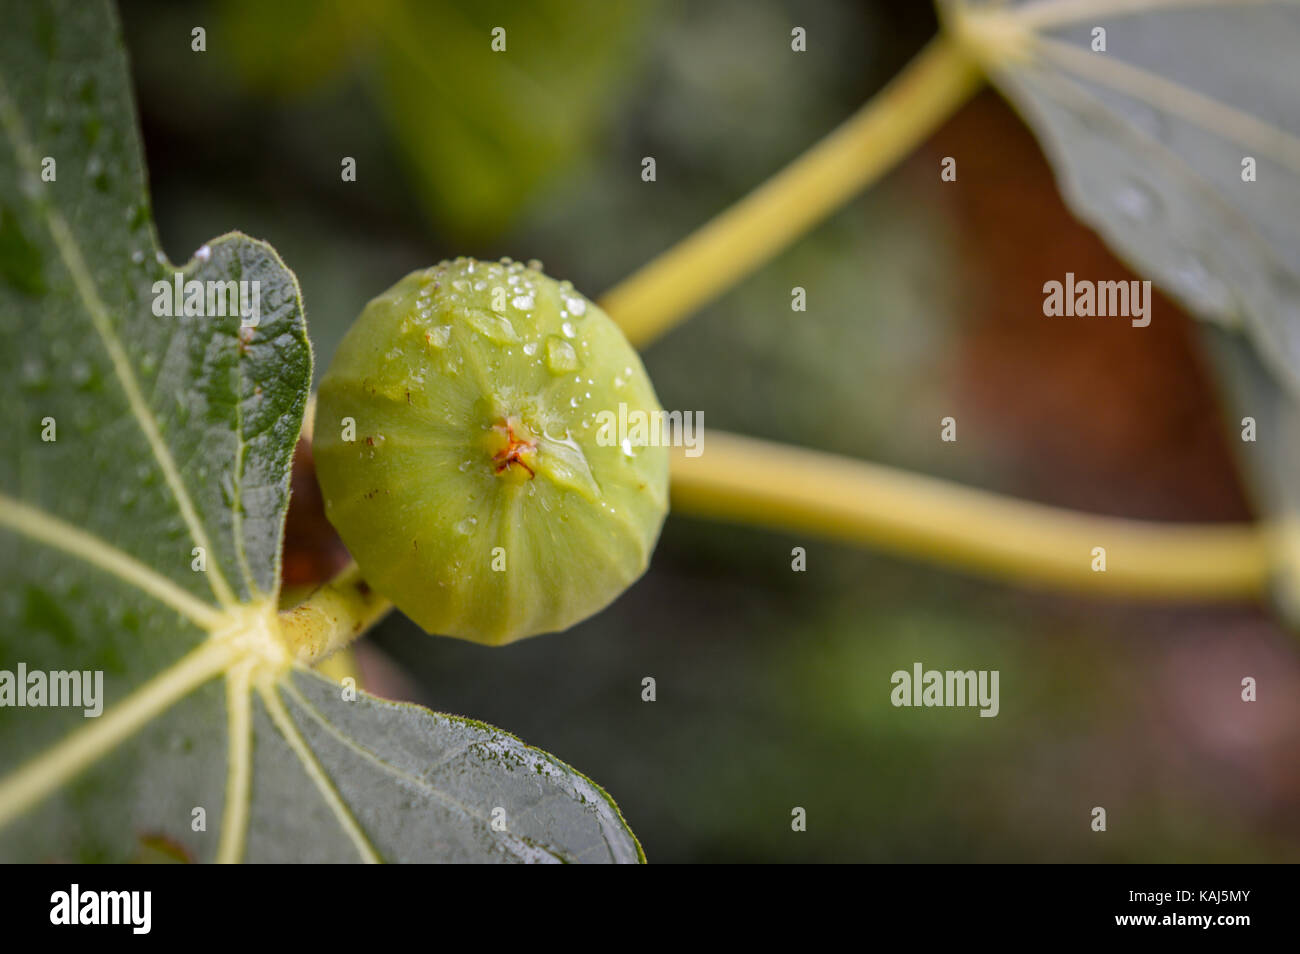 A fig on a branch after rain - Stock Image